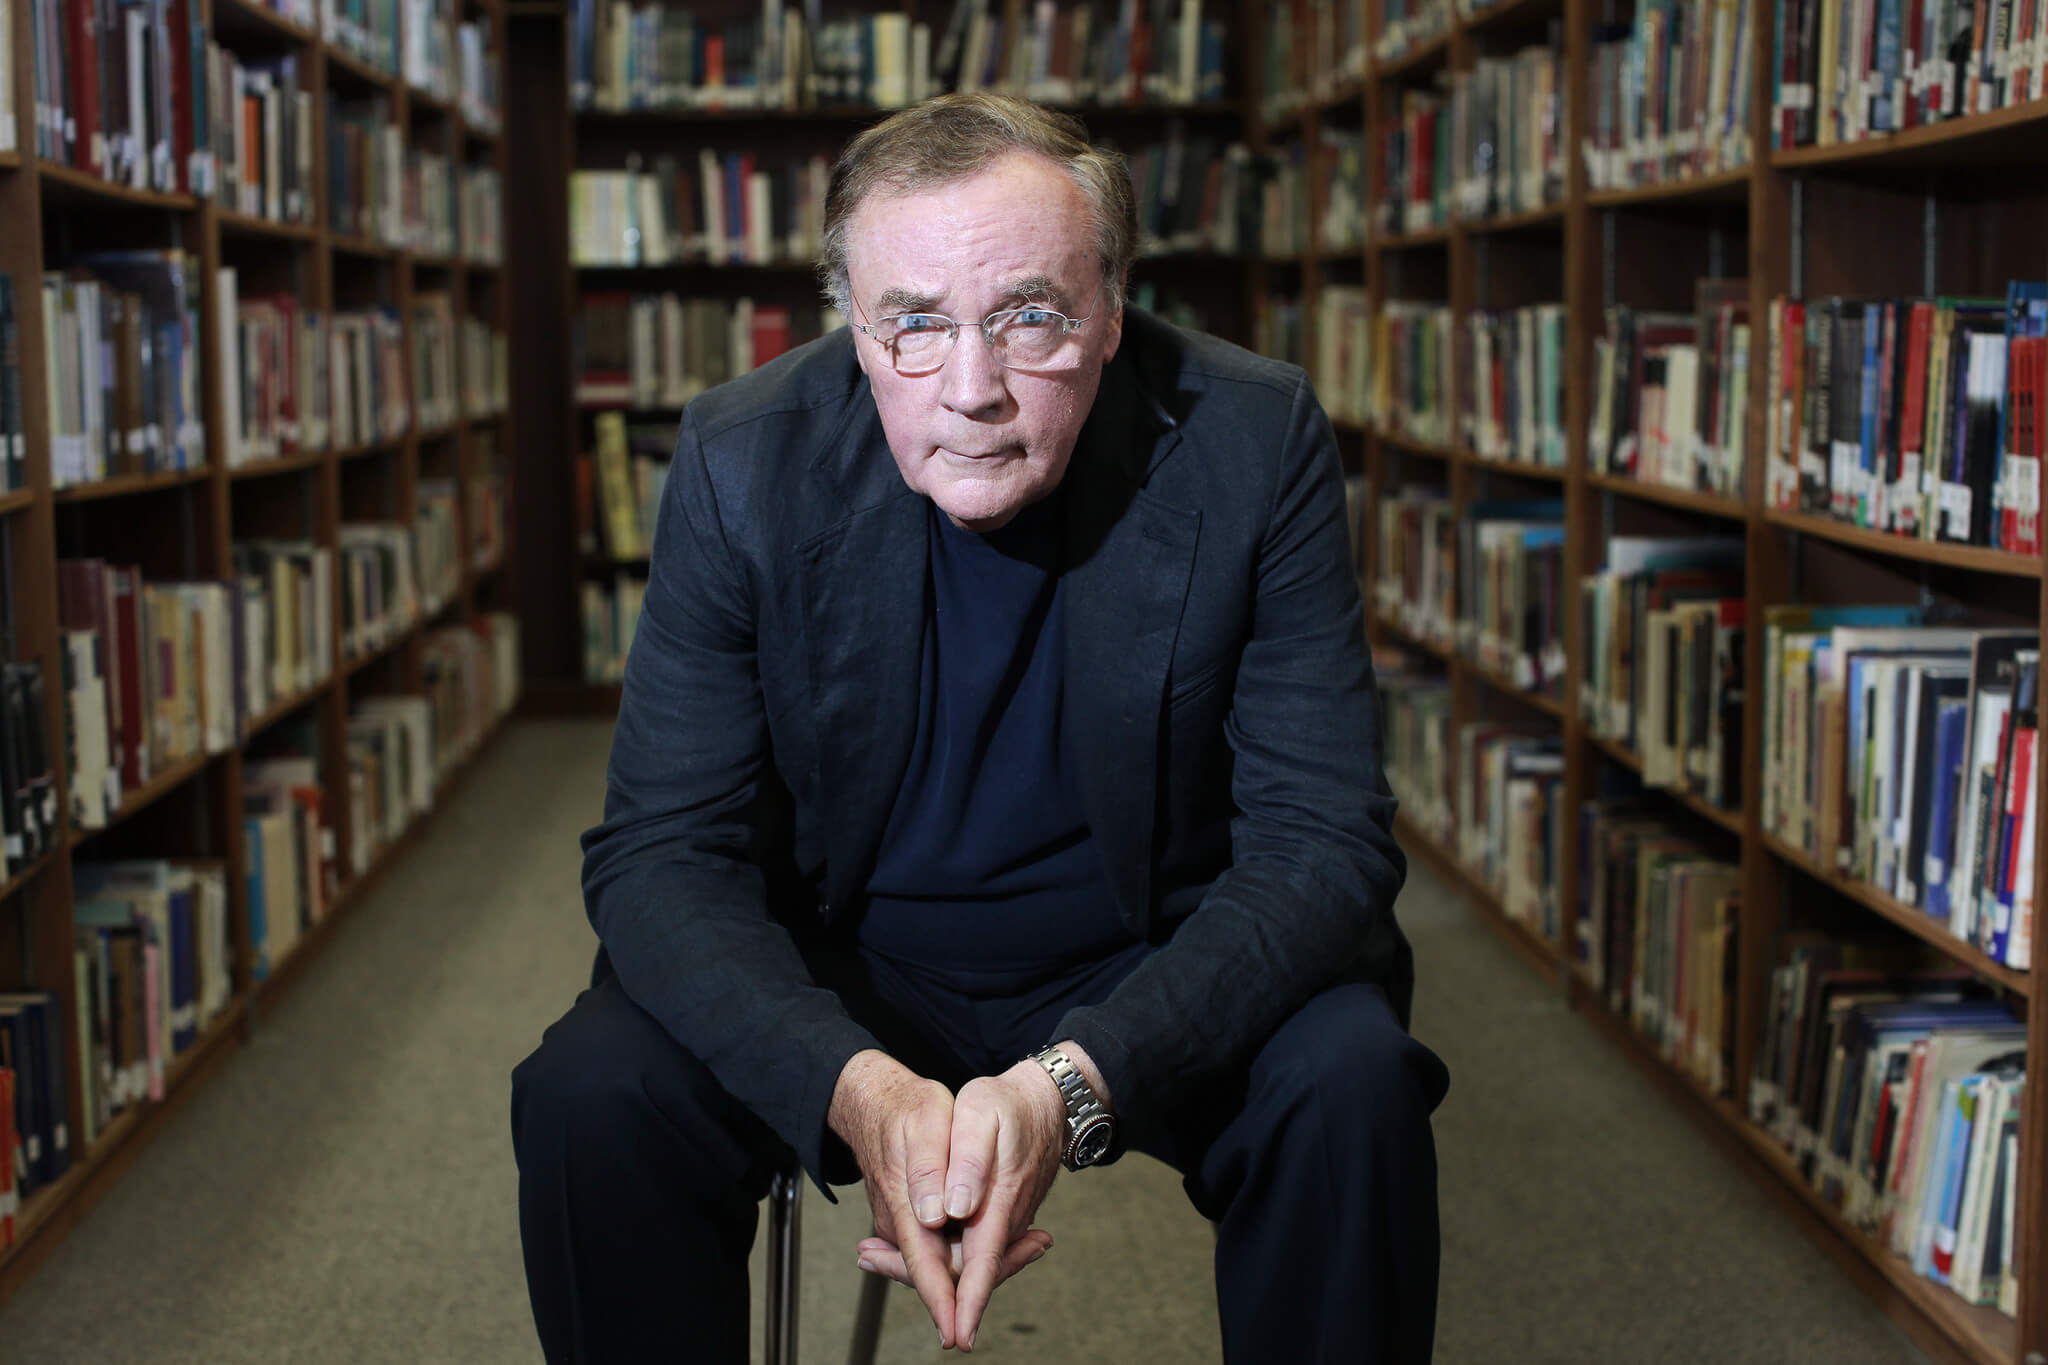 james patterson 1 - Stop The Presses: James Patterson Cancels His Murder of Stephen King Novel